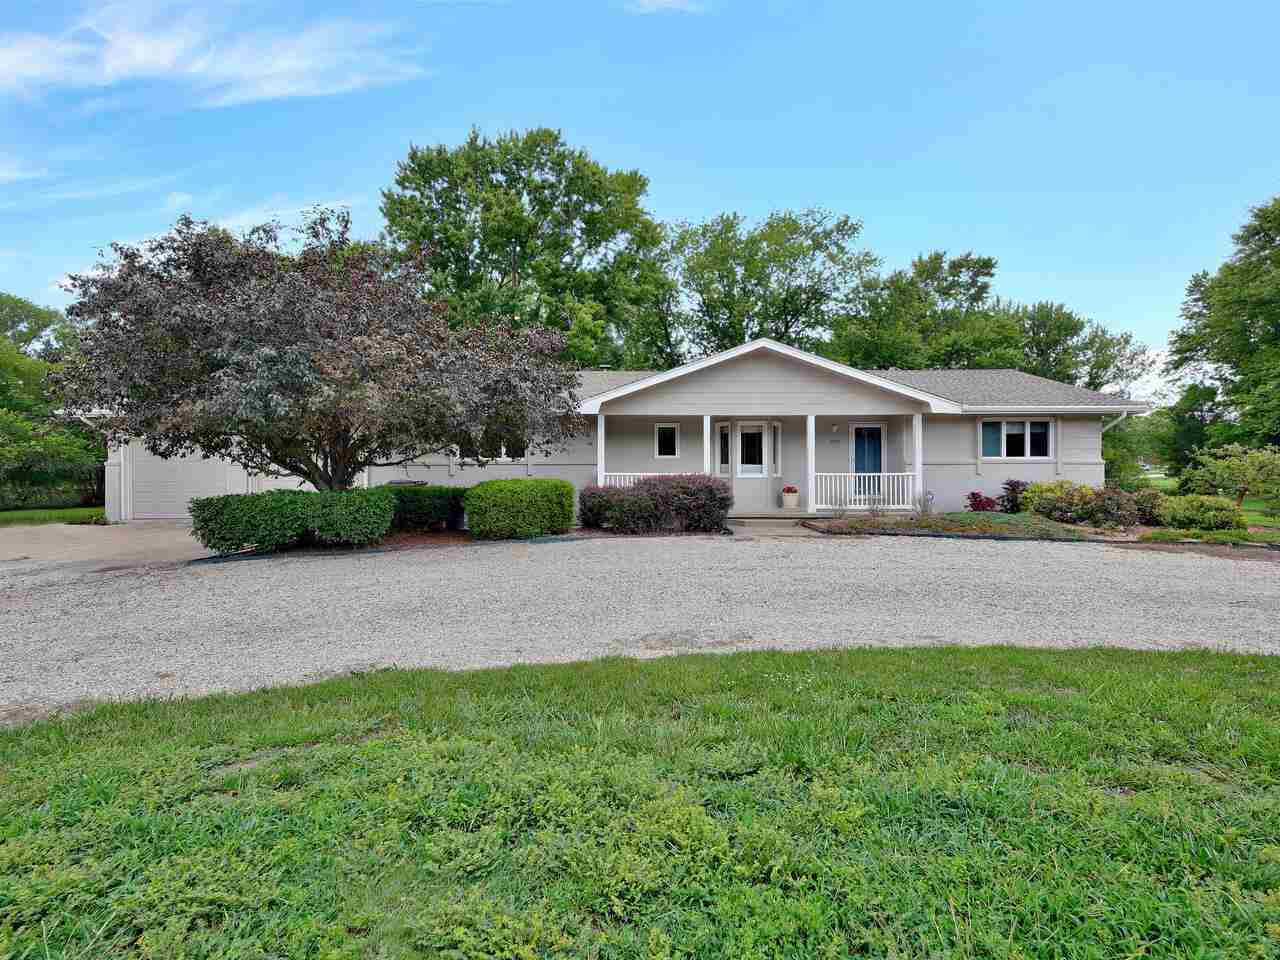 Adorable 3 bedroom, 2 1/2 bath, ranch style home in Andover Central schools with gorgeous lake views